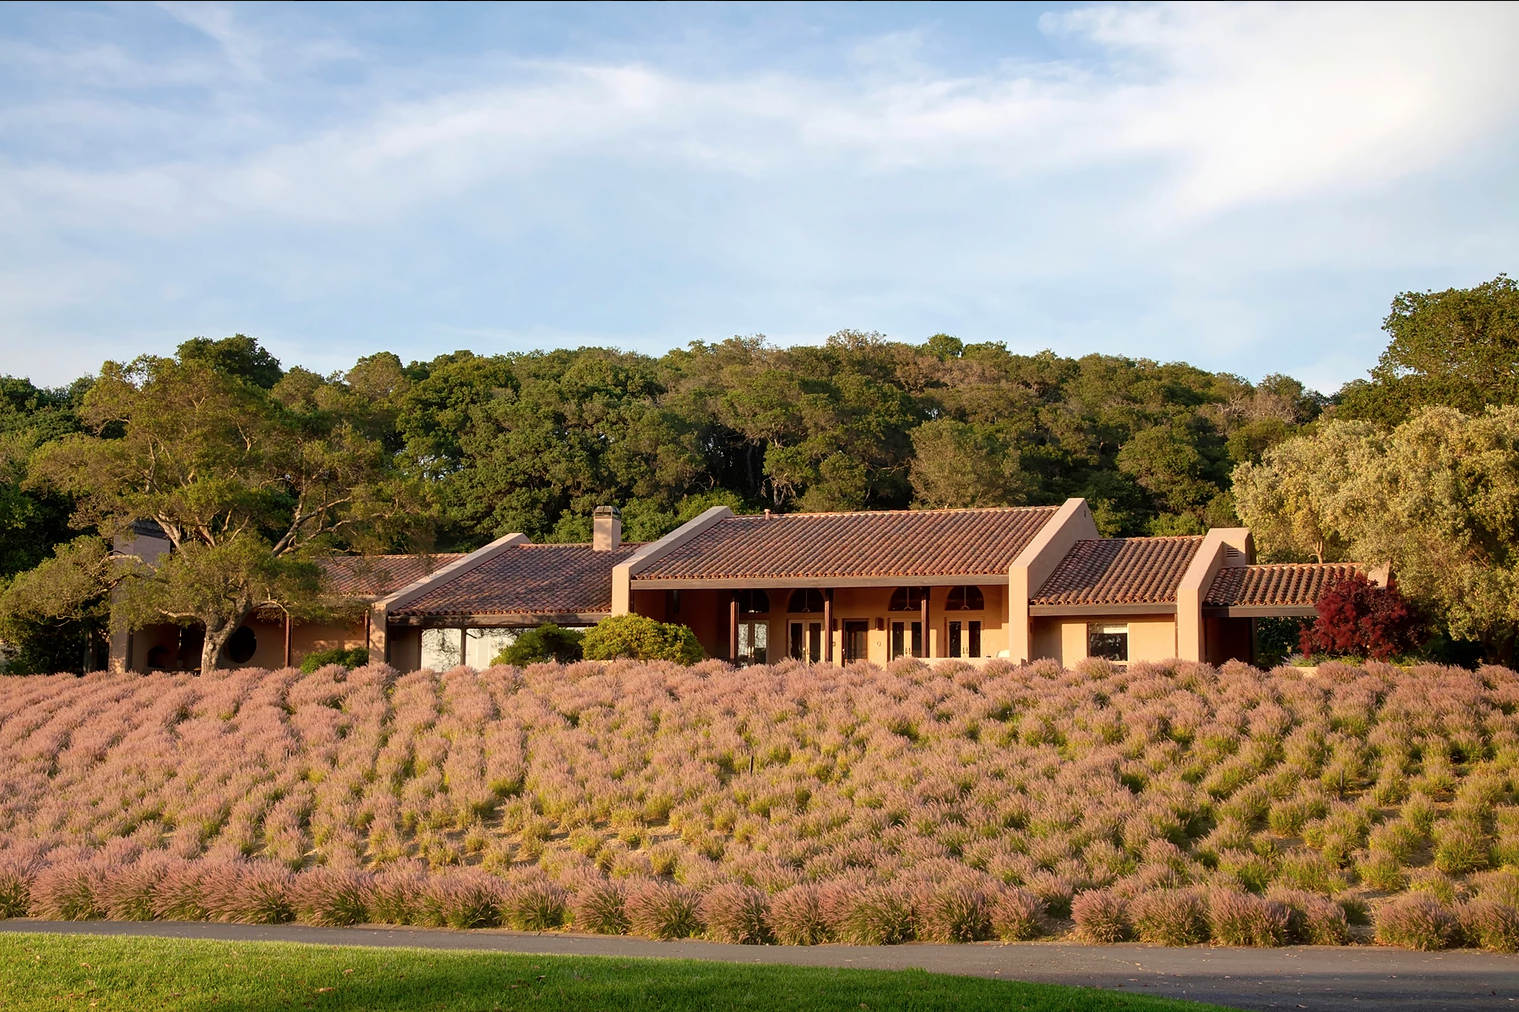 A Napa Valley Home Is on Sale For $18 Million, And It Comes With Its Own Vineyard and Equestrian Farm